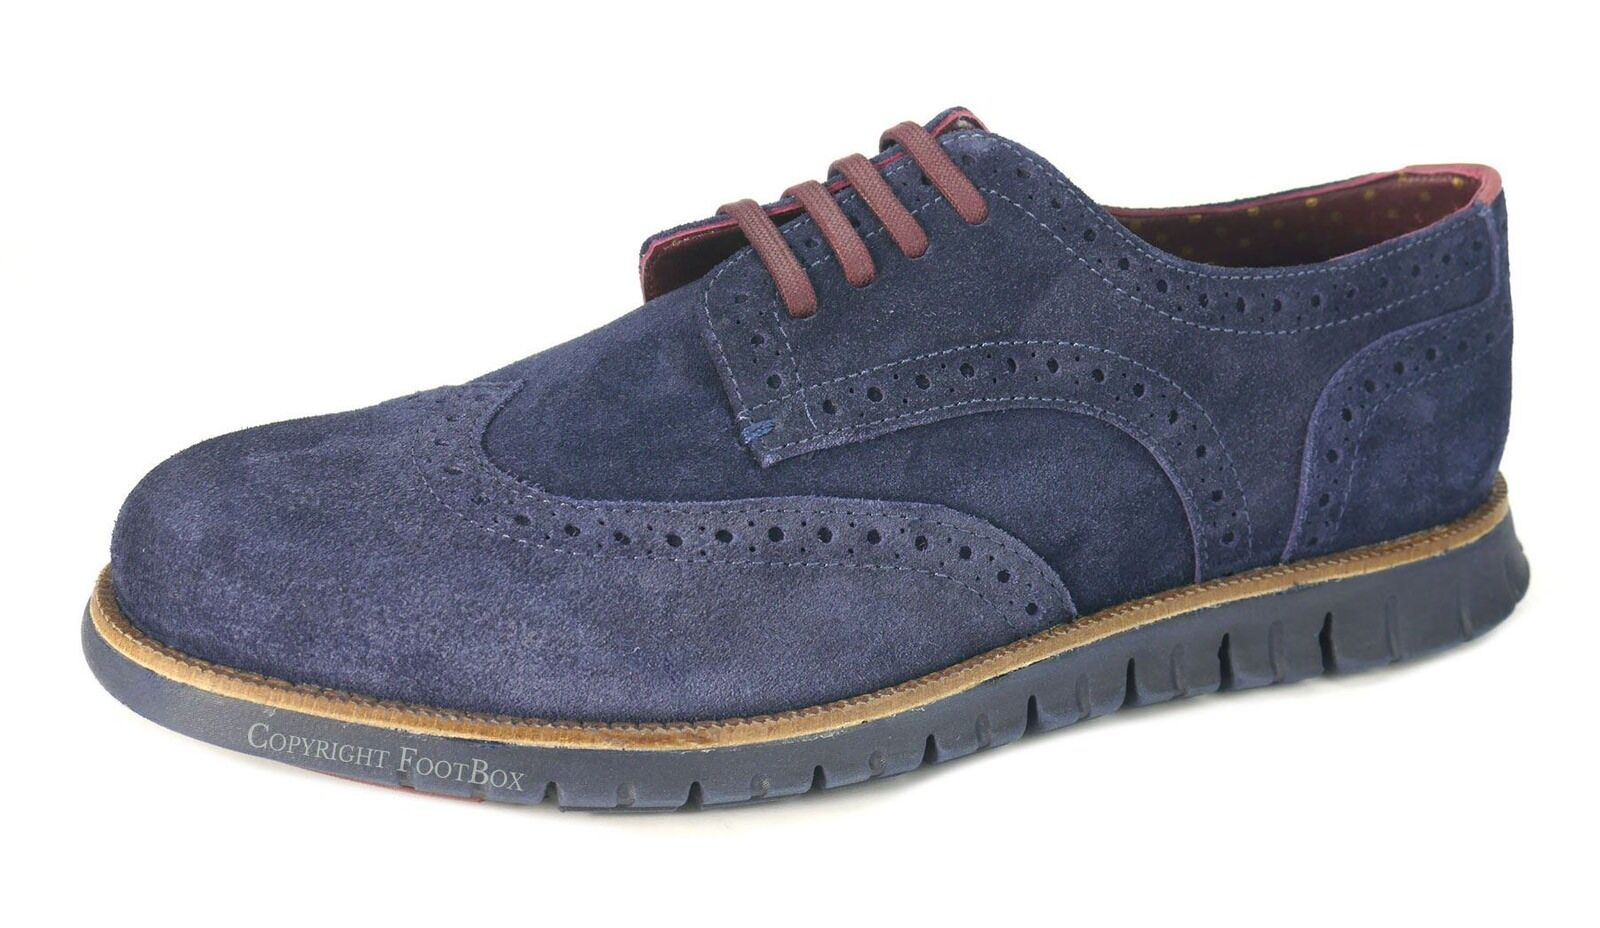 London Brogues Gatz Mens Suede Brogues Casual Derby Lightweight Shoes Navy Shoes